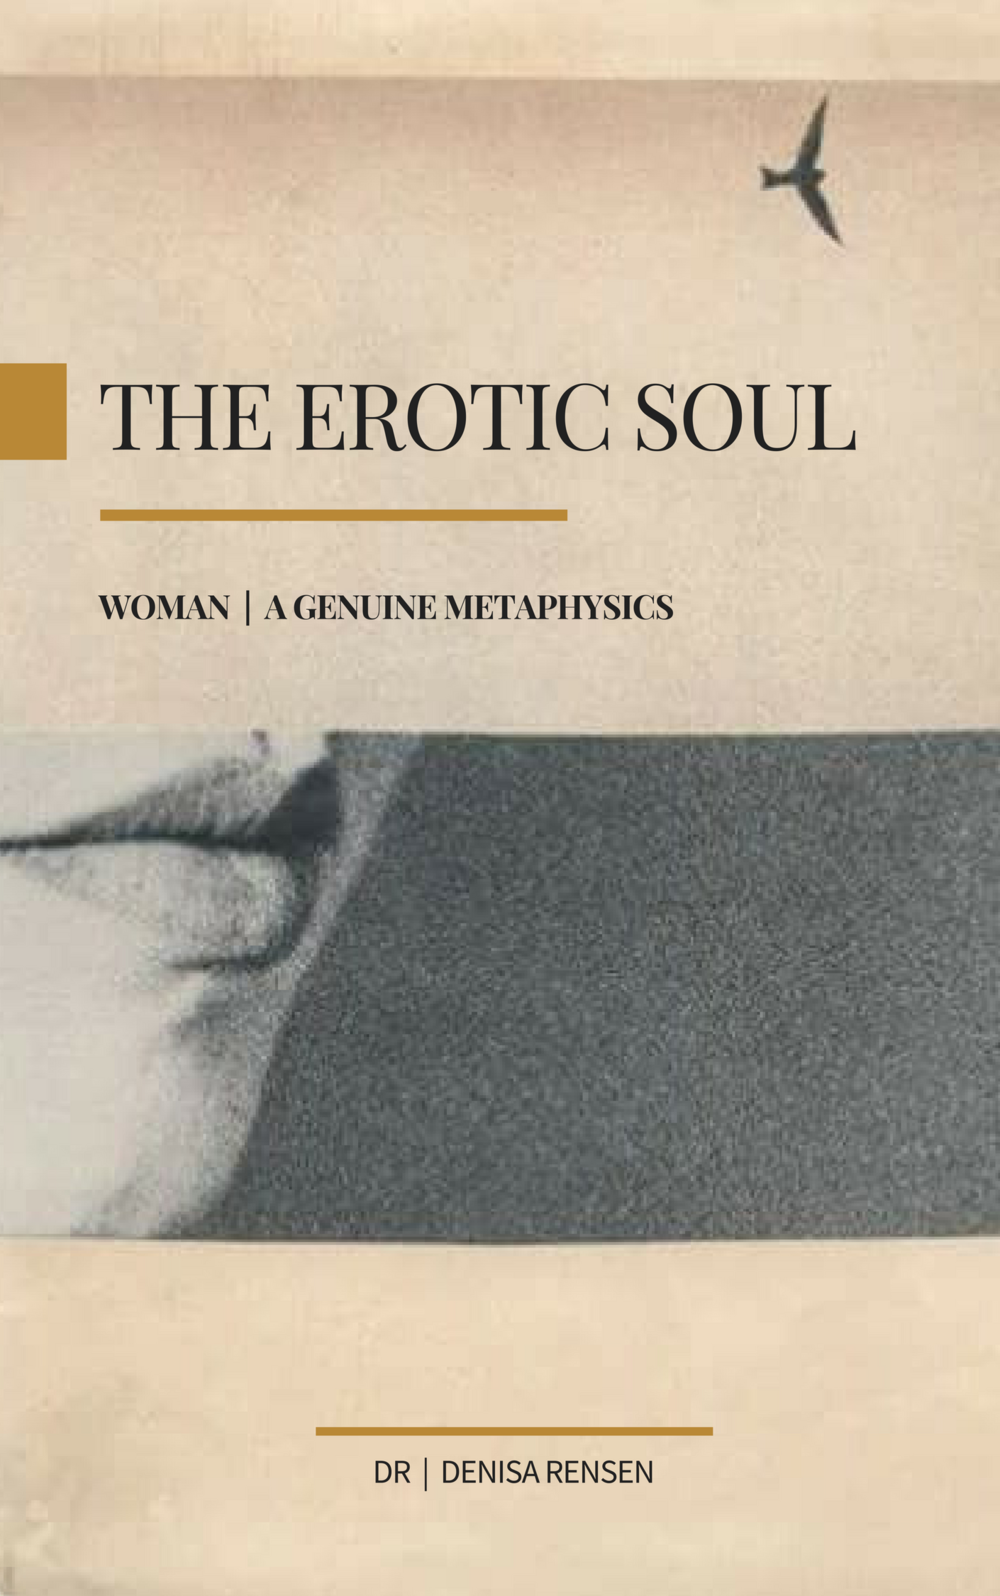 The EROTIC SOUL.png